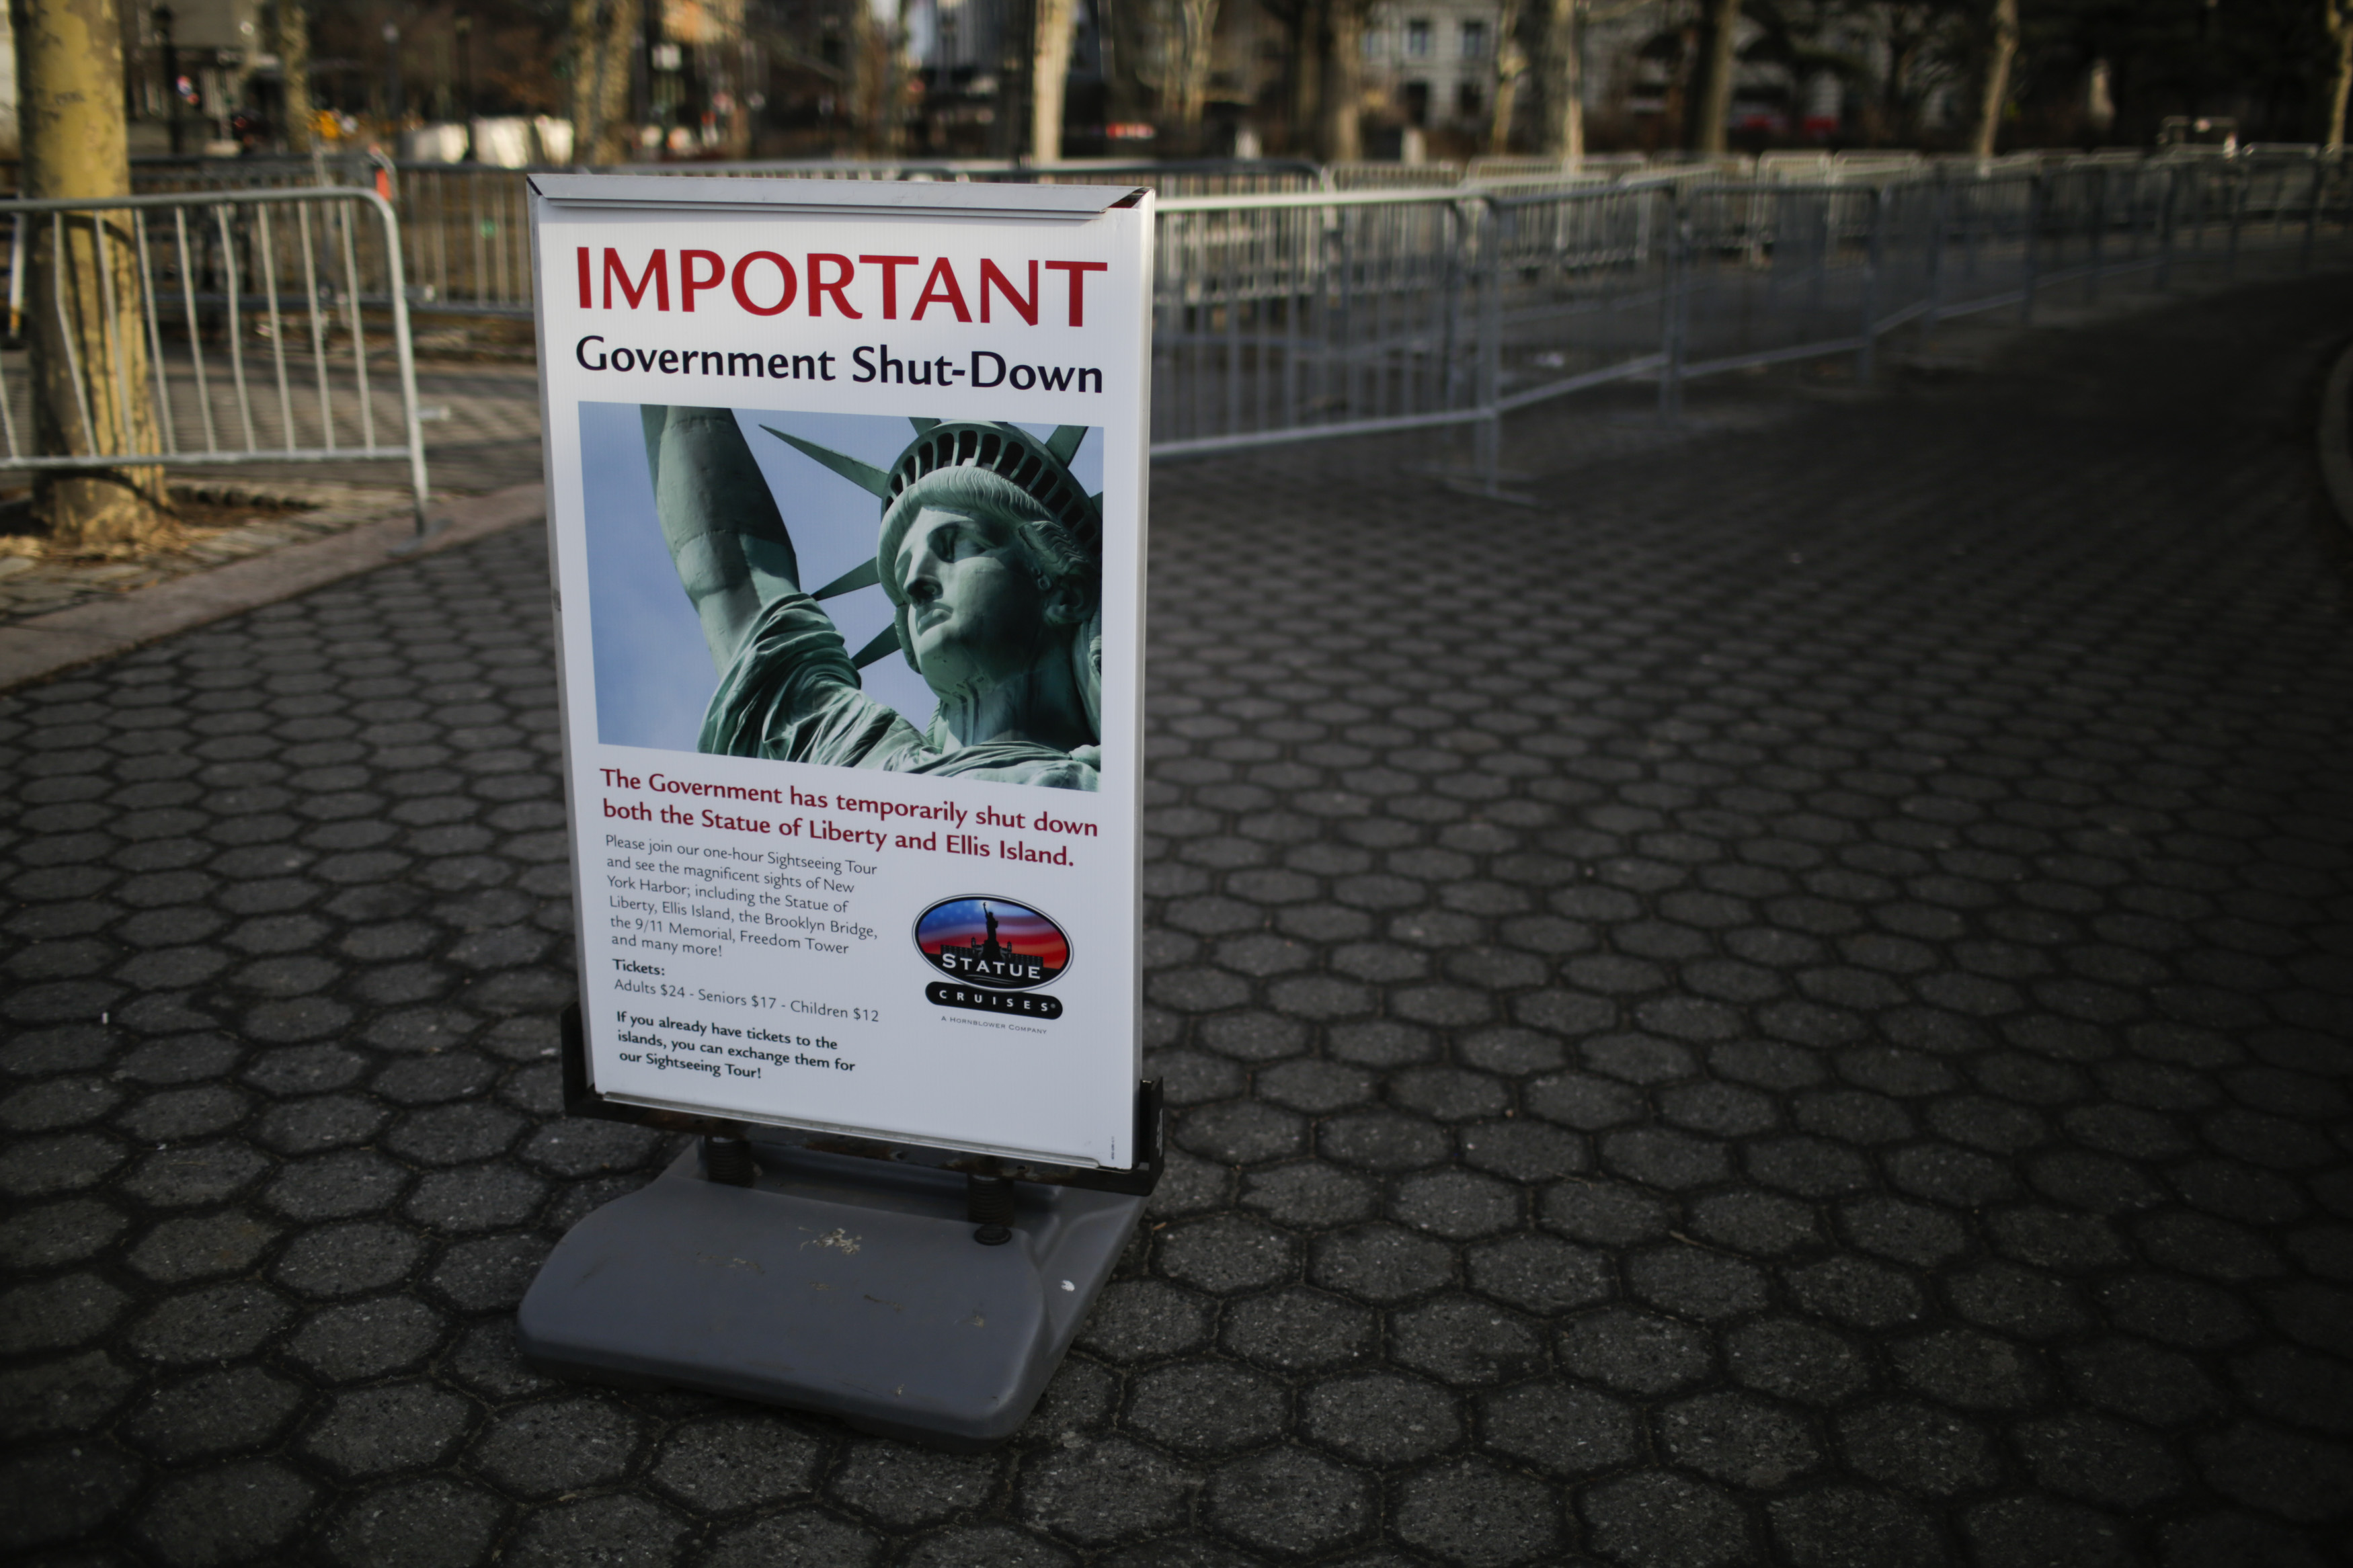 A Shutdown placard is seen at the entrance of the Liberty State ferry terminal in Battery Park on January 21, 2018 in New York City.